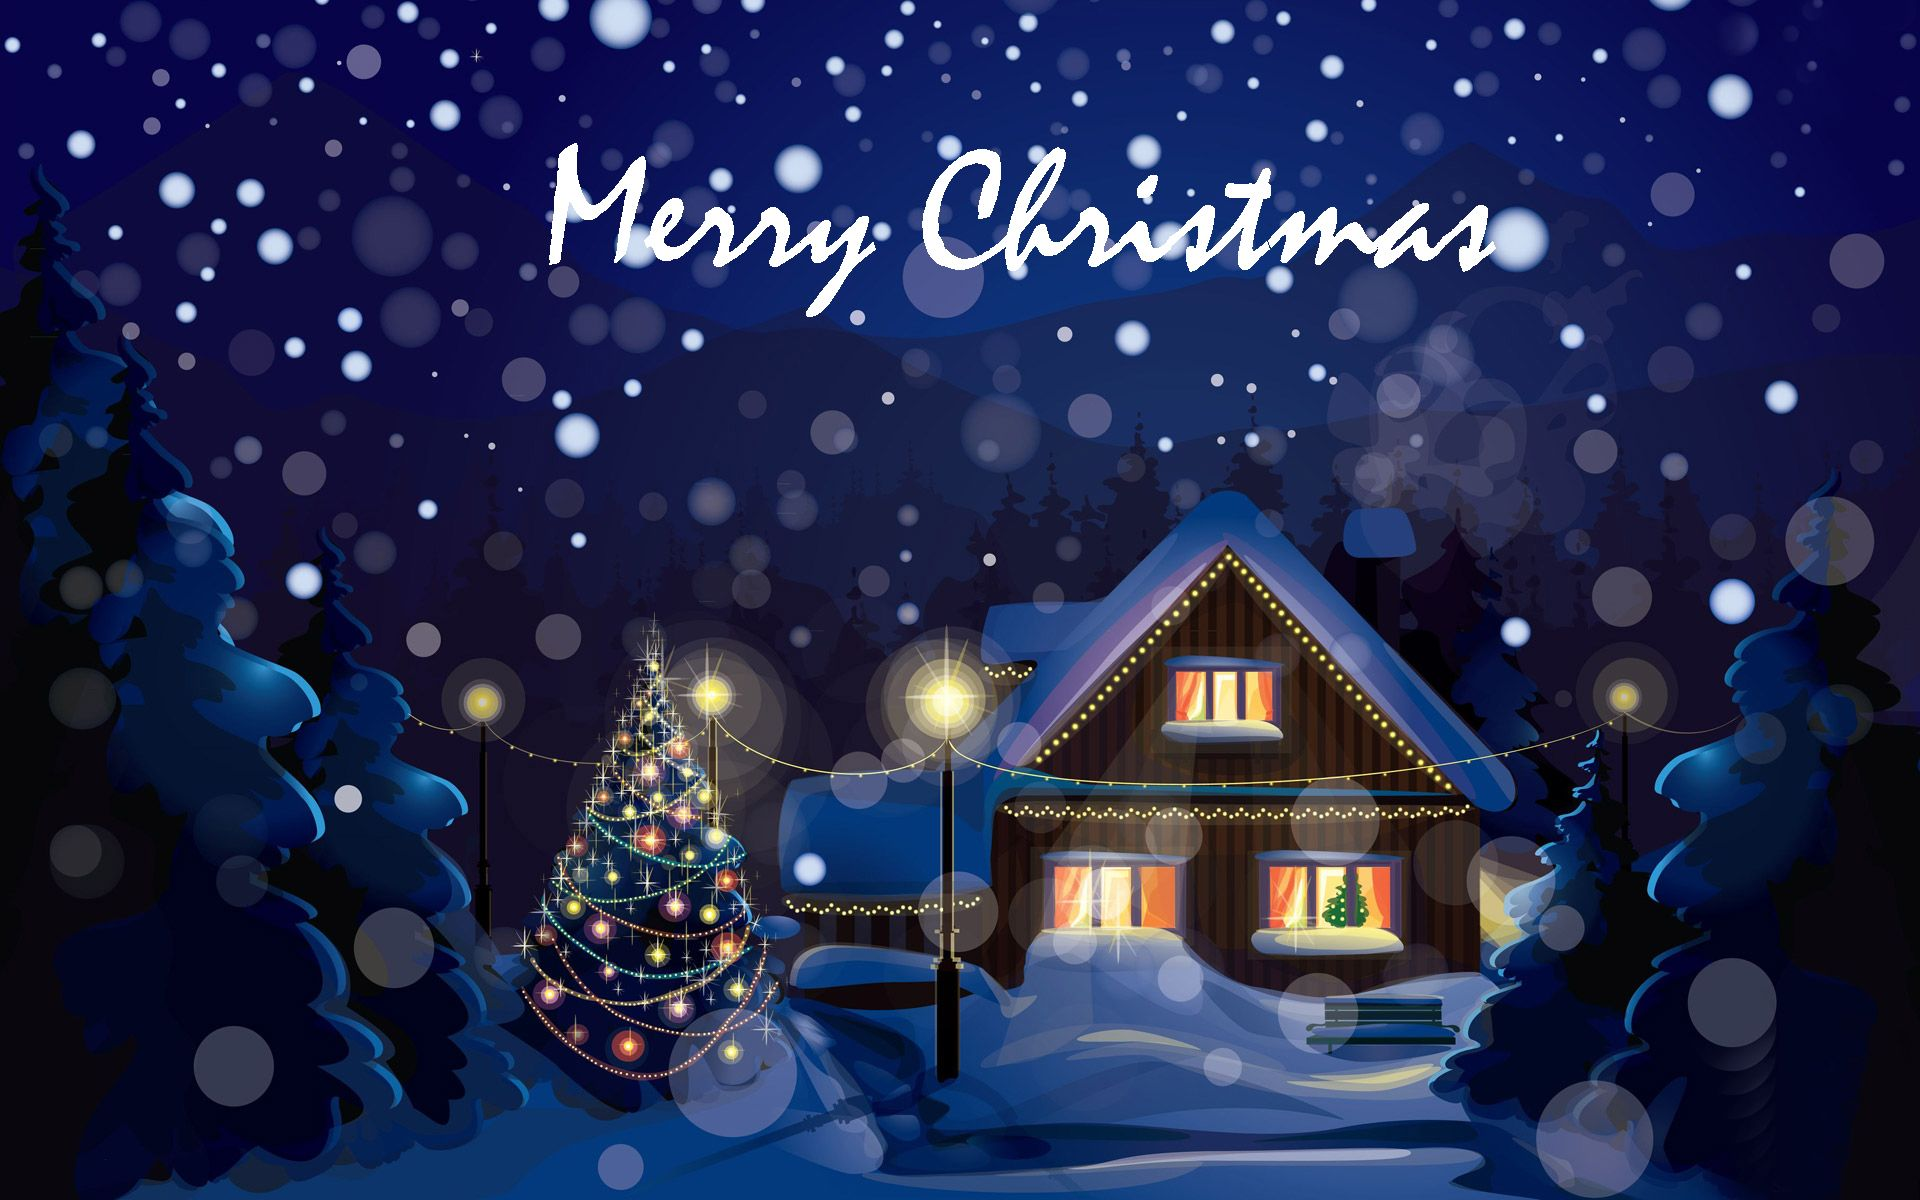 Merry Christmas Wallpapers HD free download Merry